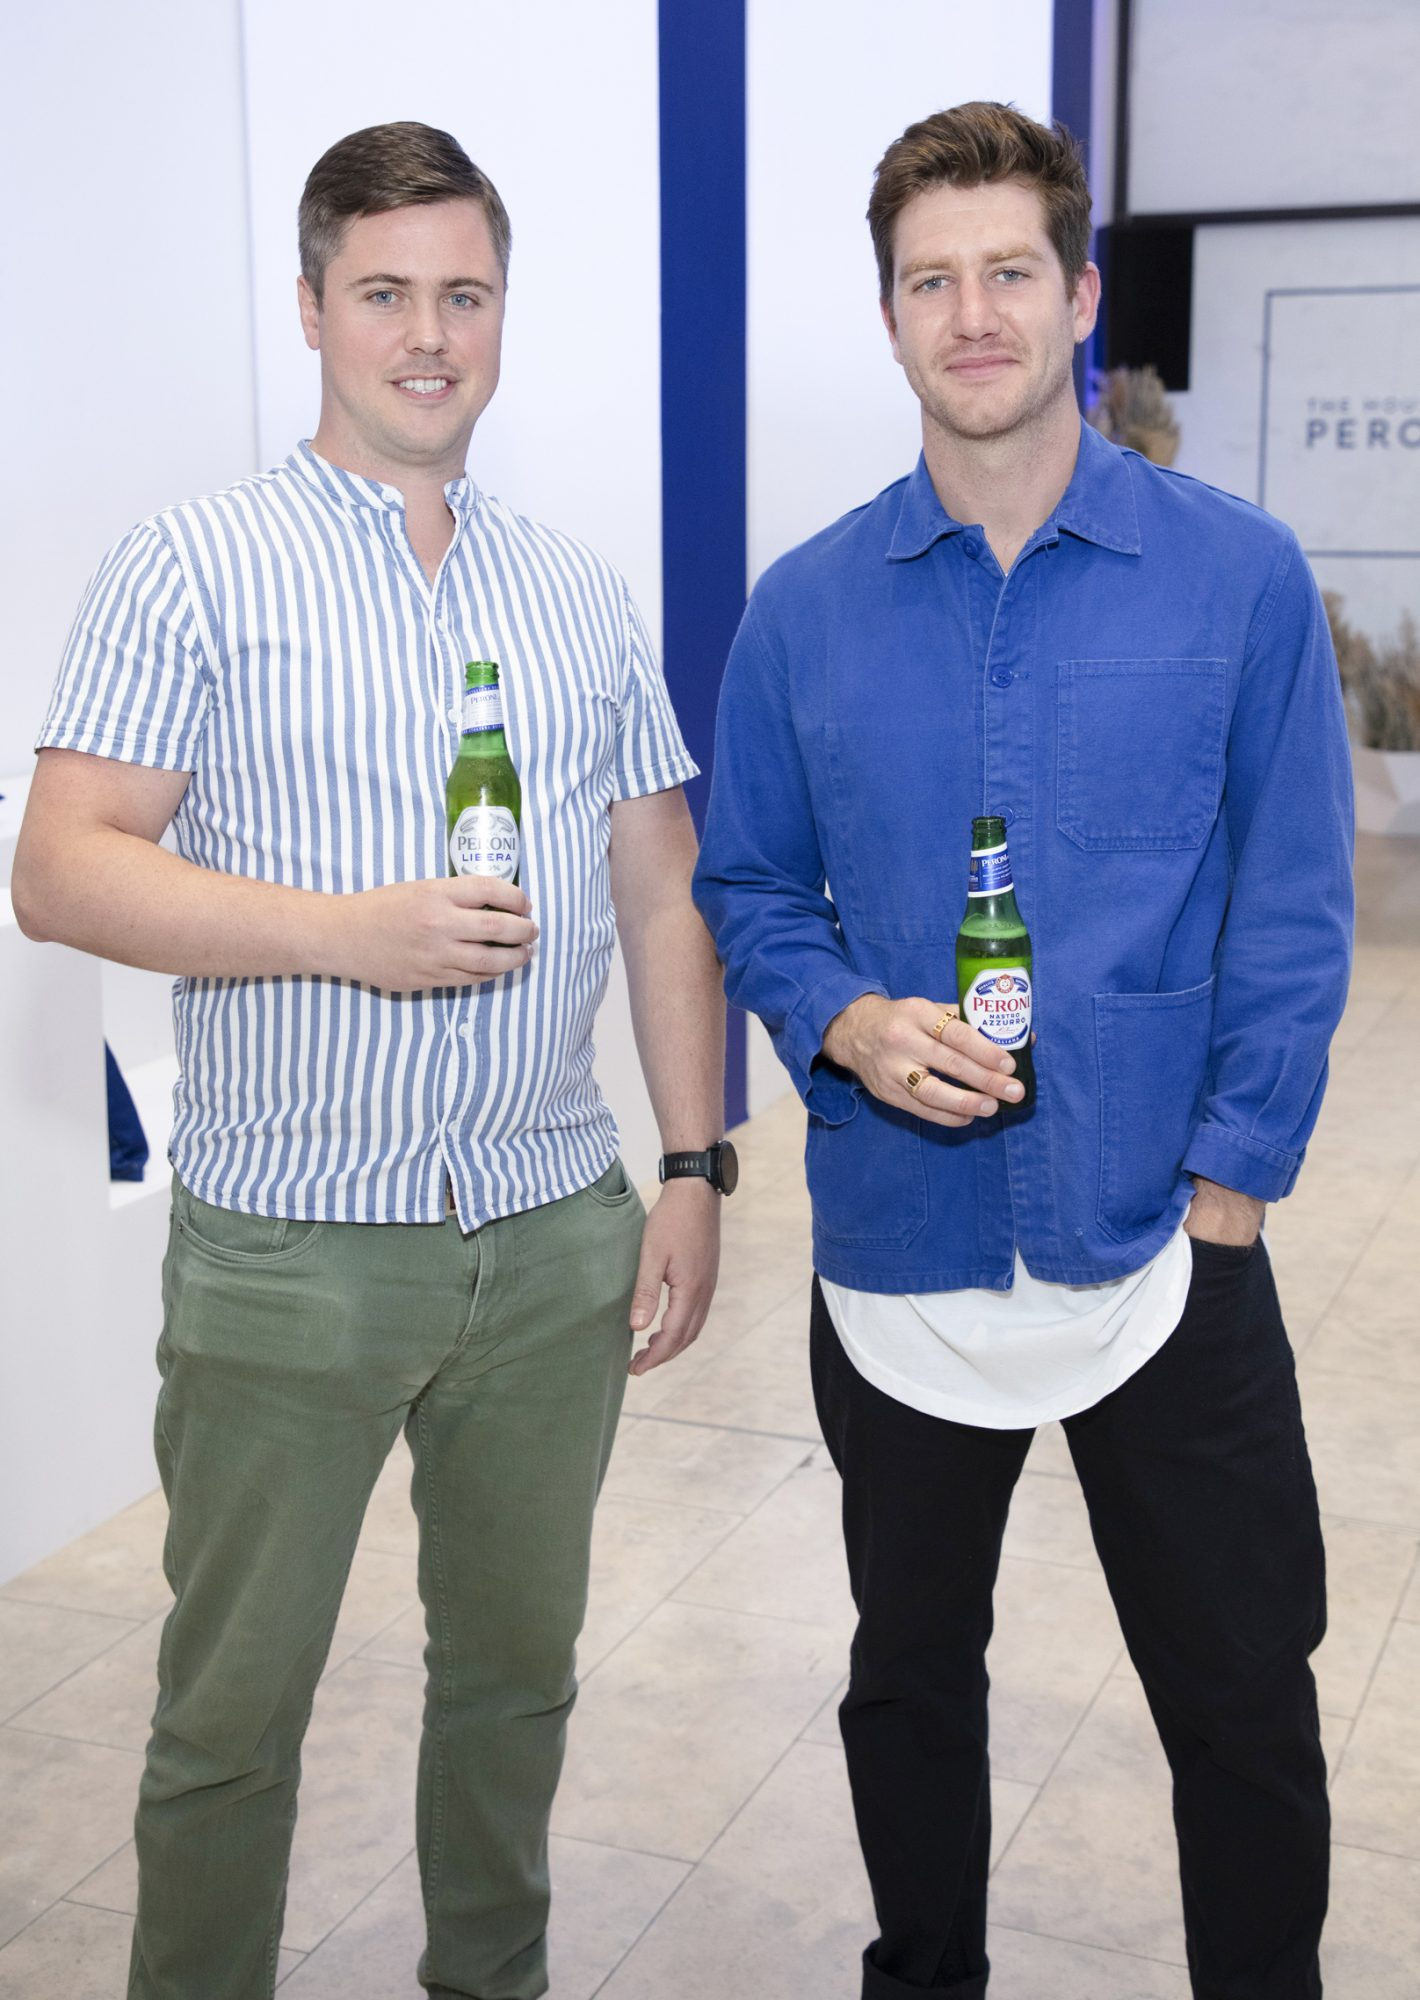 Jeff Brennan & Ciaran Storey pictured at the launch of The House of Peroni, which is open at the RHA in Dublin until Sunday, 1st September 2019. This year's residency sees the RHA transformed into a stylish Peroni inspired experience, filled with food, drink and design. www.thehouseofperoni.com Photo: Anthony Woods.